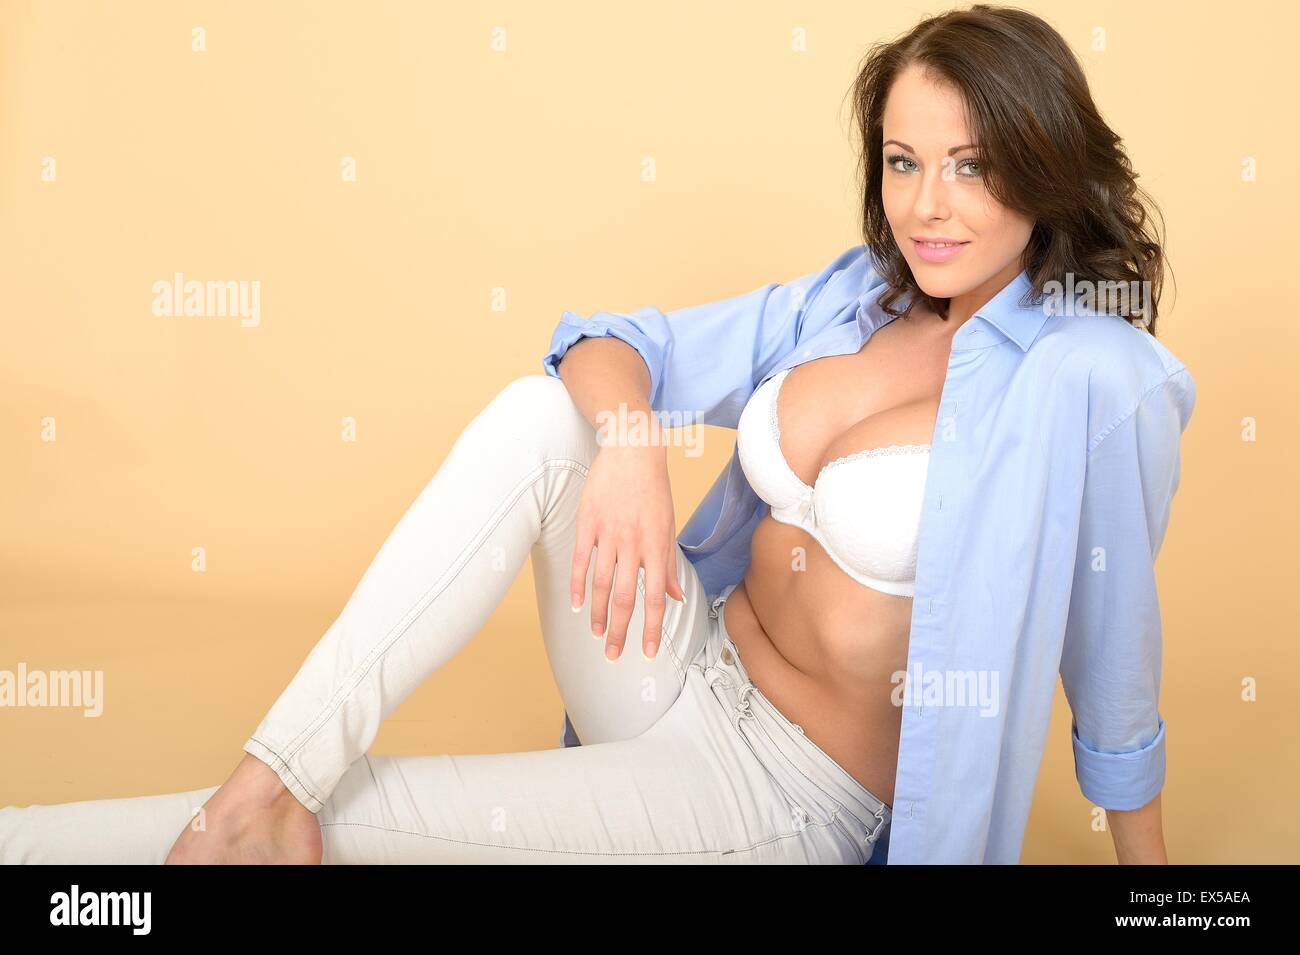 9cac4841e37 Attractive Beautiful Sexy Sensual Young Woman Sitting on the Floor Wearing  a Blue Shirt and White Jeans and Bra Lingerie